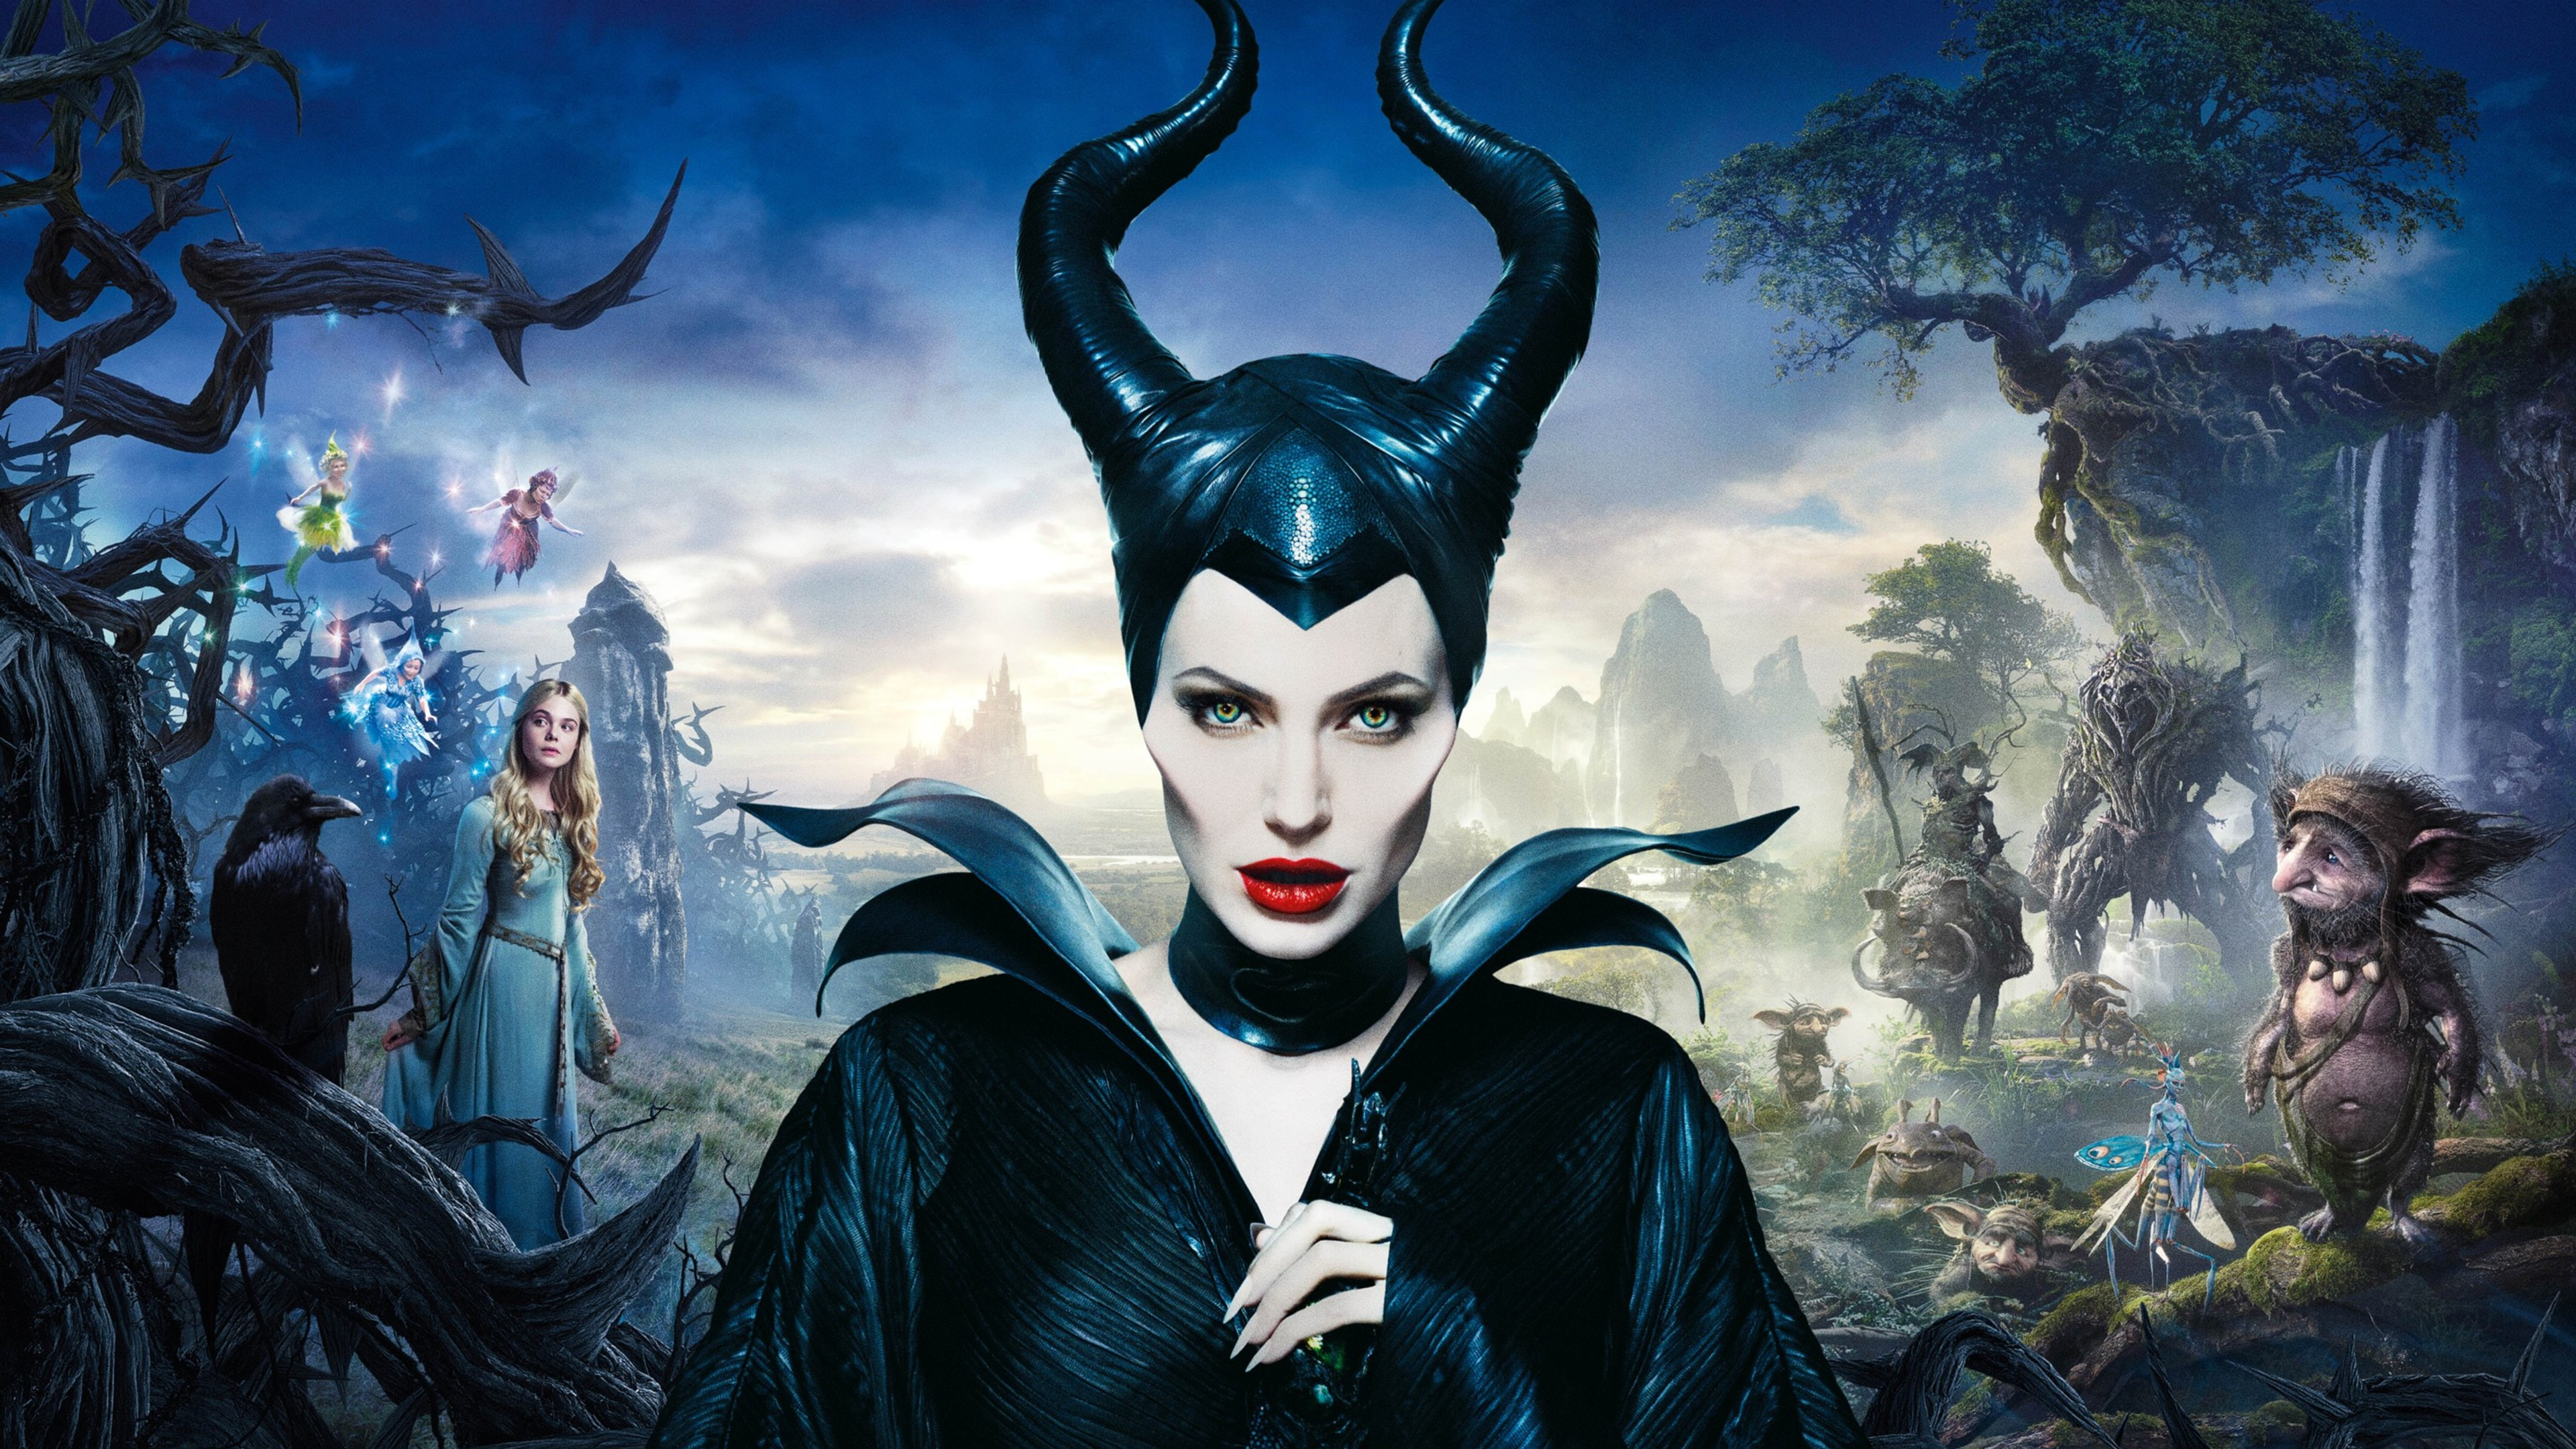 angelina jolie in maleficent movie 1536361918 - Angelina Jolie In Maleficent Movie - movies wallpapers, maleficent wallpapers, celebrities wallpapers, angelina jolie wallpapers